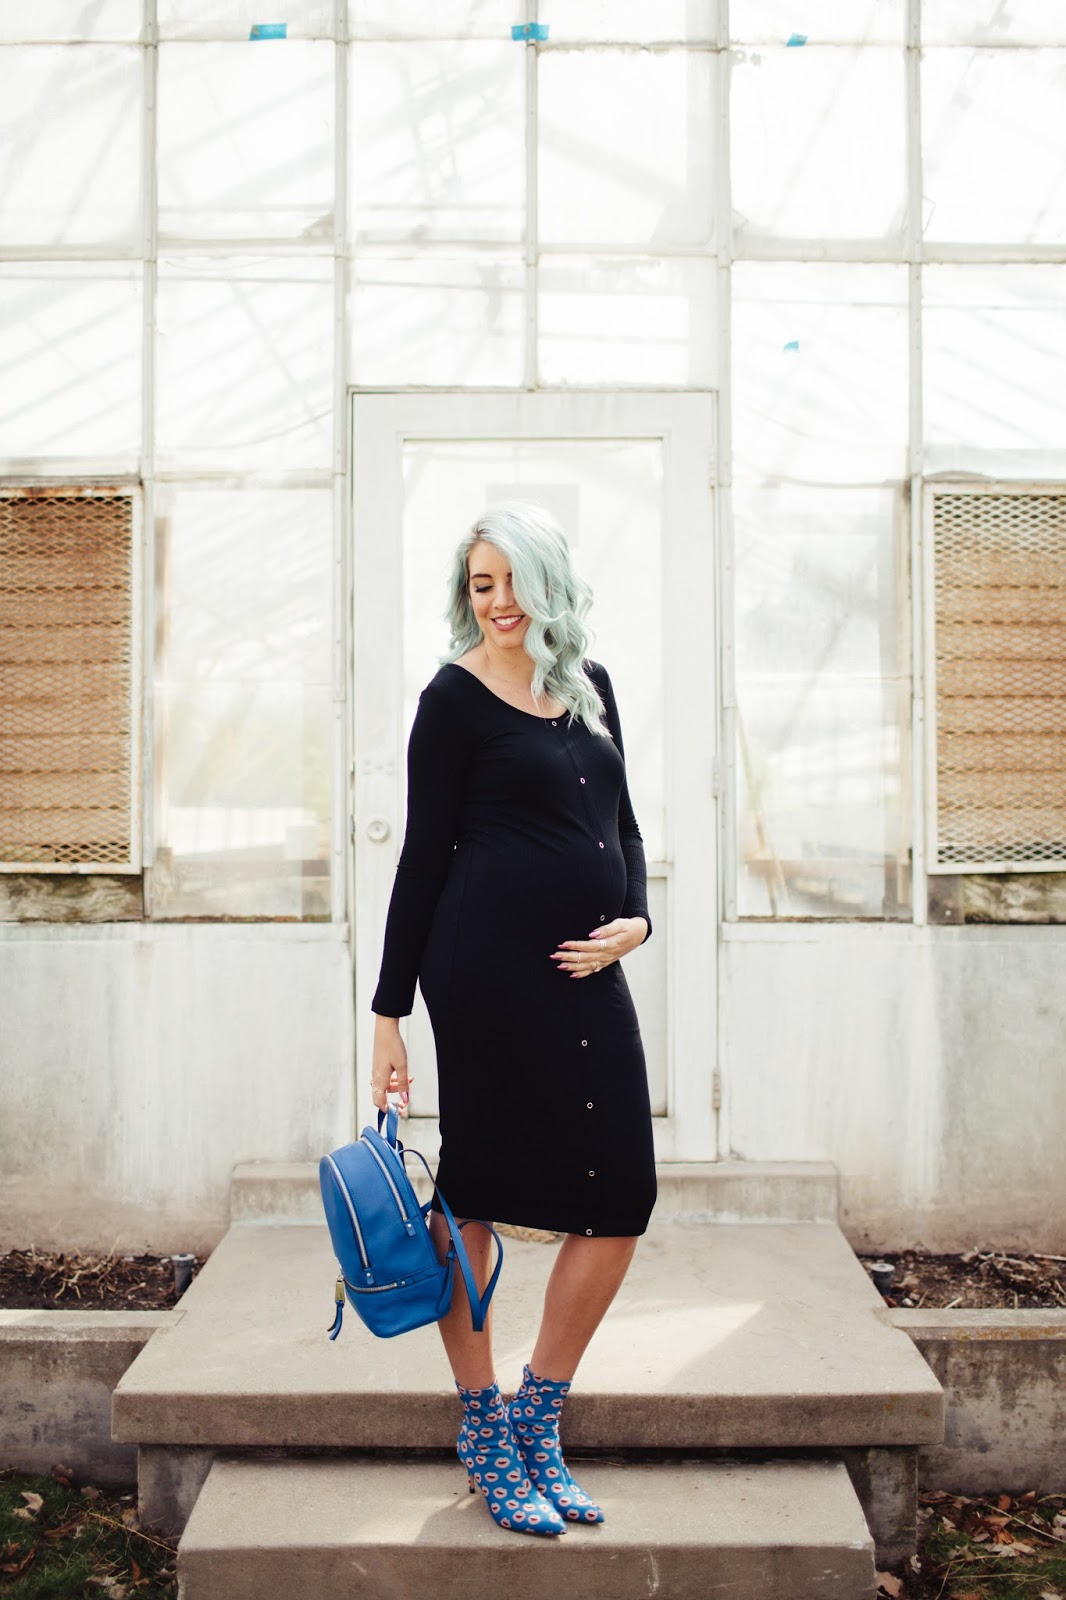 Pregnant Style, Black Dress, Blue Backpack, SeneGence Distributor